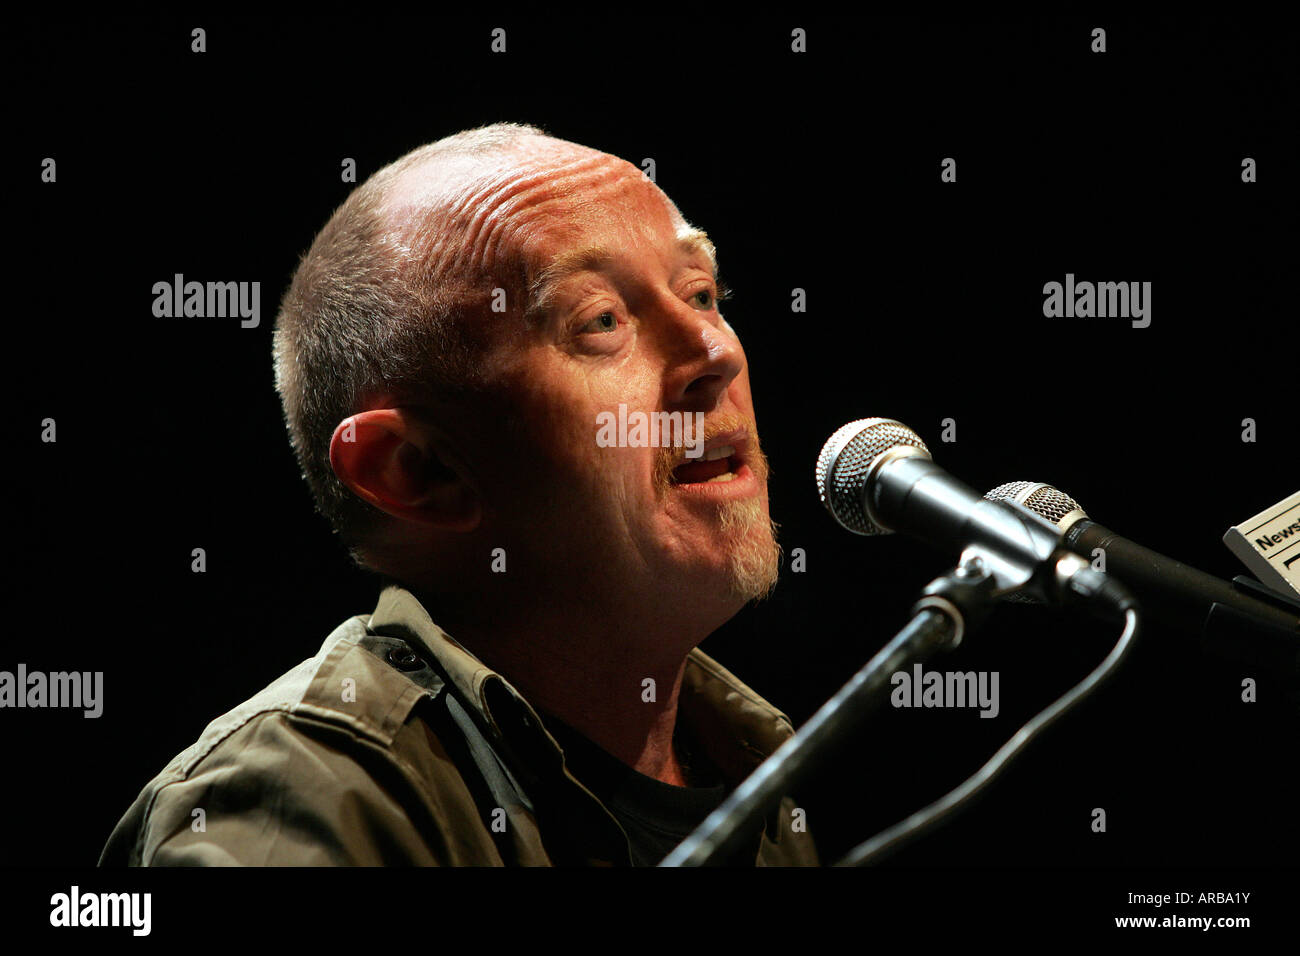 New Zealand icon Dave Dobbyn singing on stage at Nelson - Stock Image